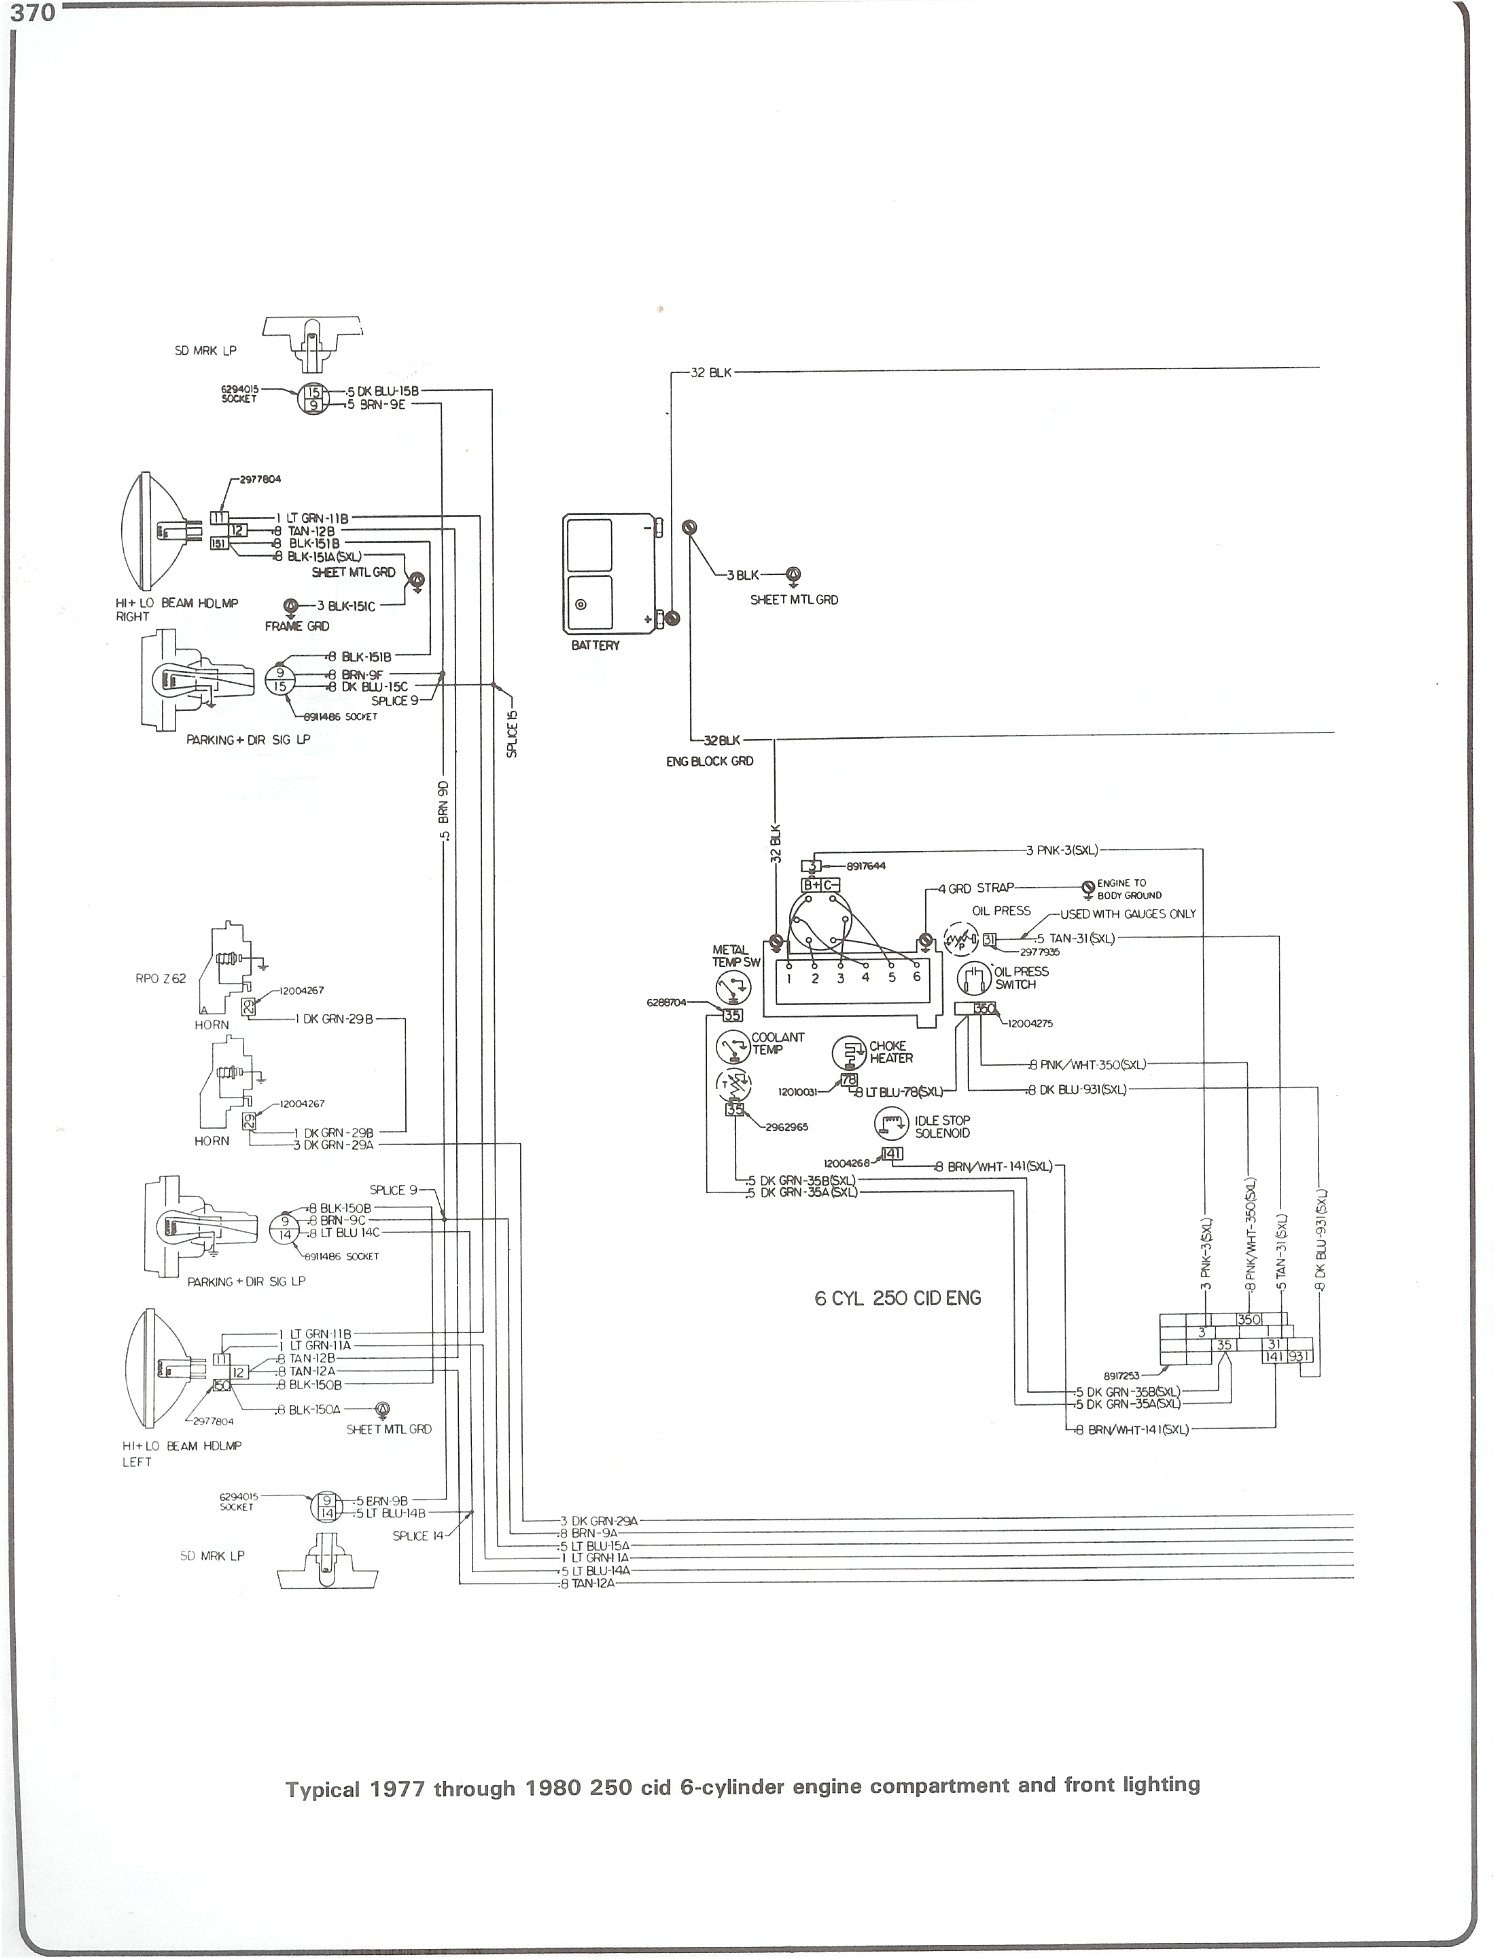 chevy s10 radio wiring diagram 1972 c10 ignition 1985 gmc we sierra best library ez go